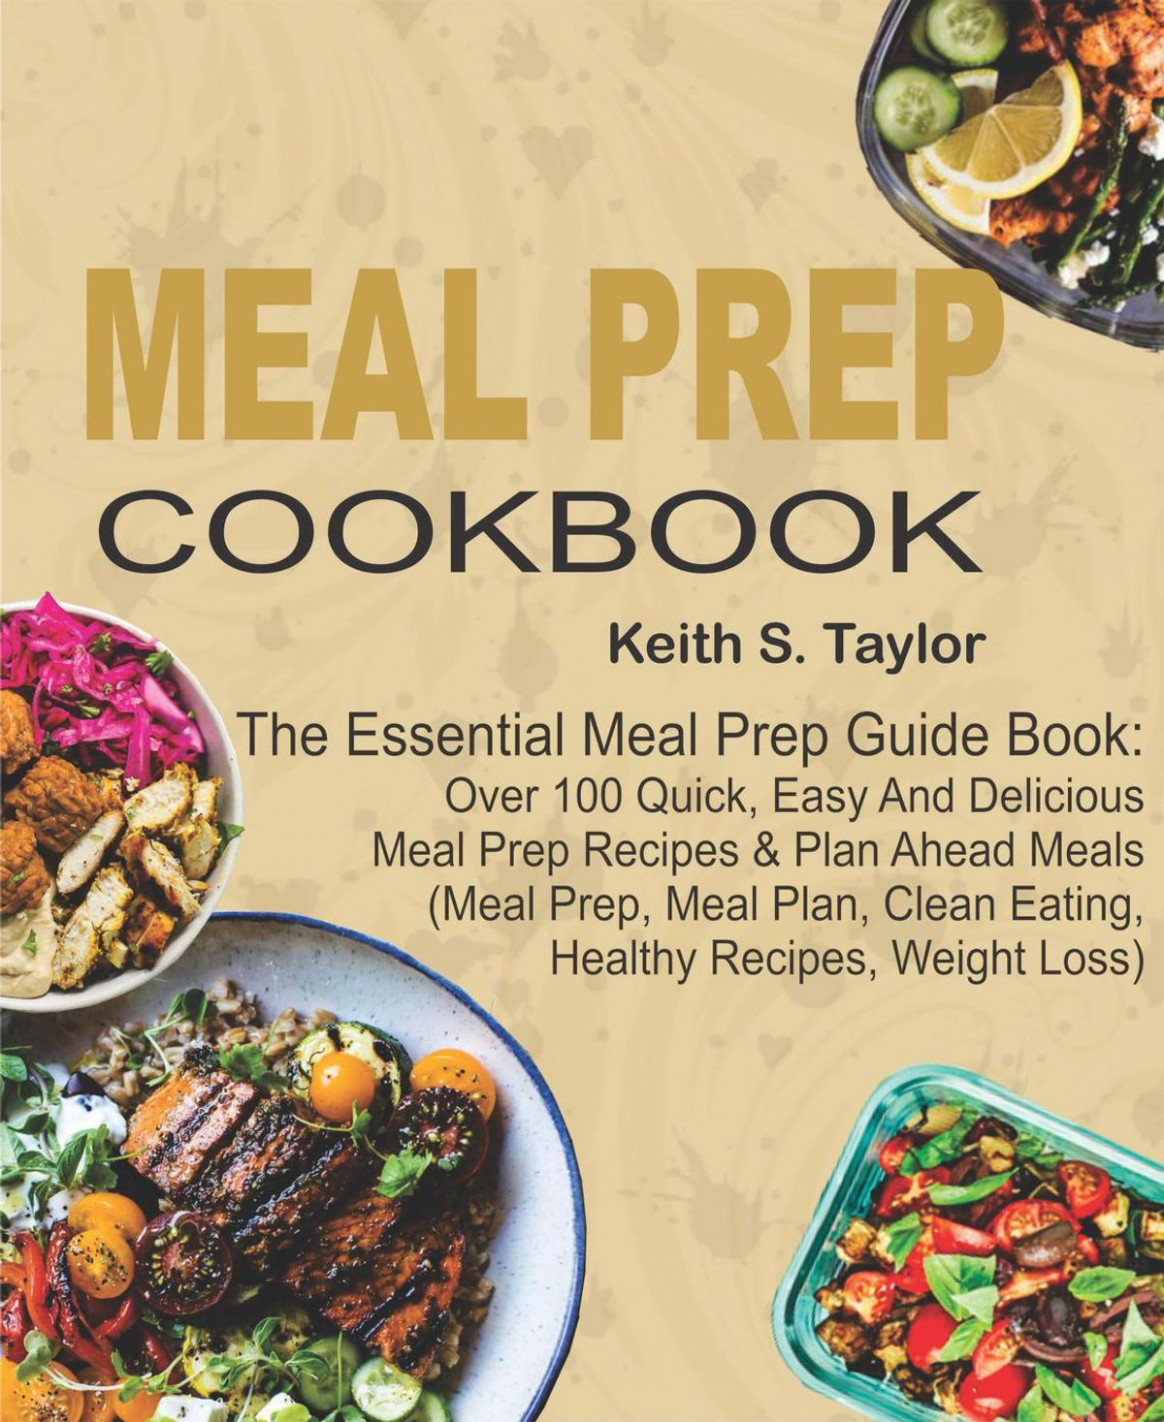 Meal Prep Cookbook: The Essential Meal Prep Guide Book: Over 12 Quick,  Easy And Delicious Meal Prep Recipes & Plan Ahead Meals (Meal Prep, Meal  Plan, ..